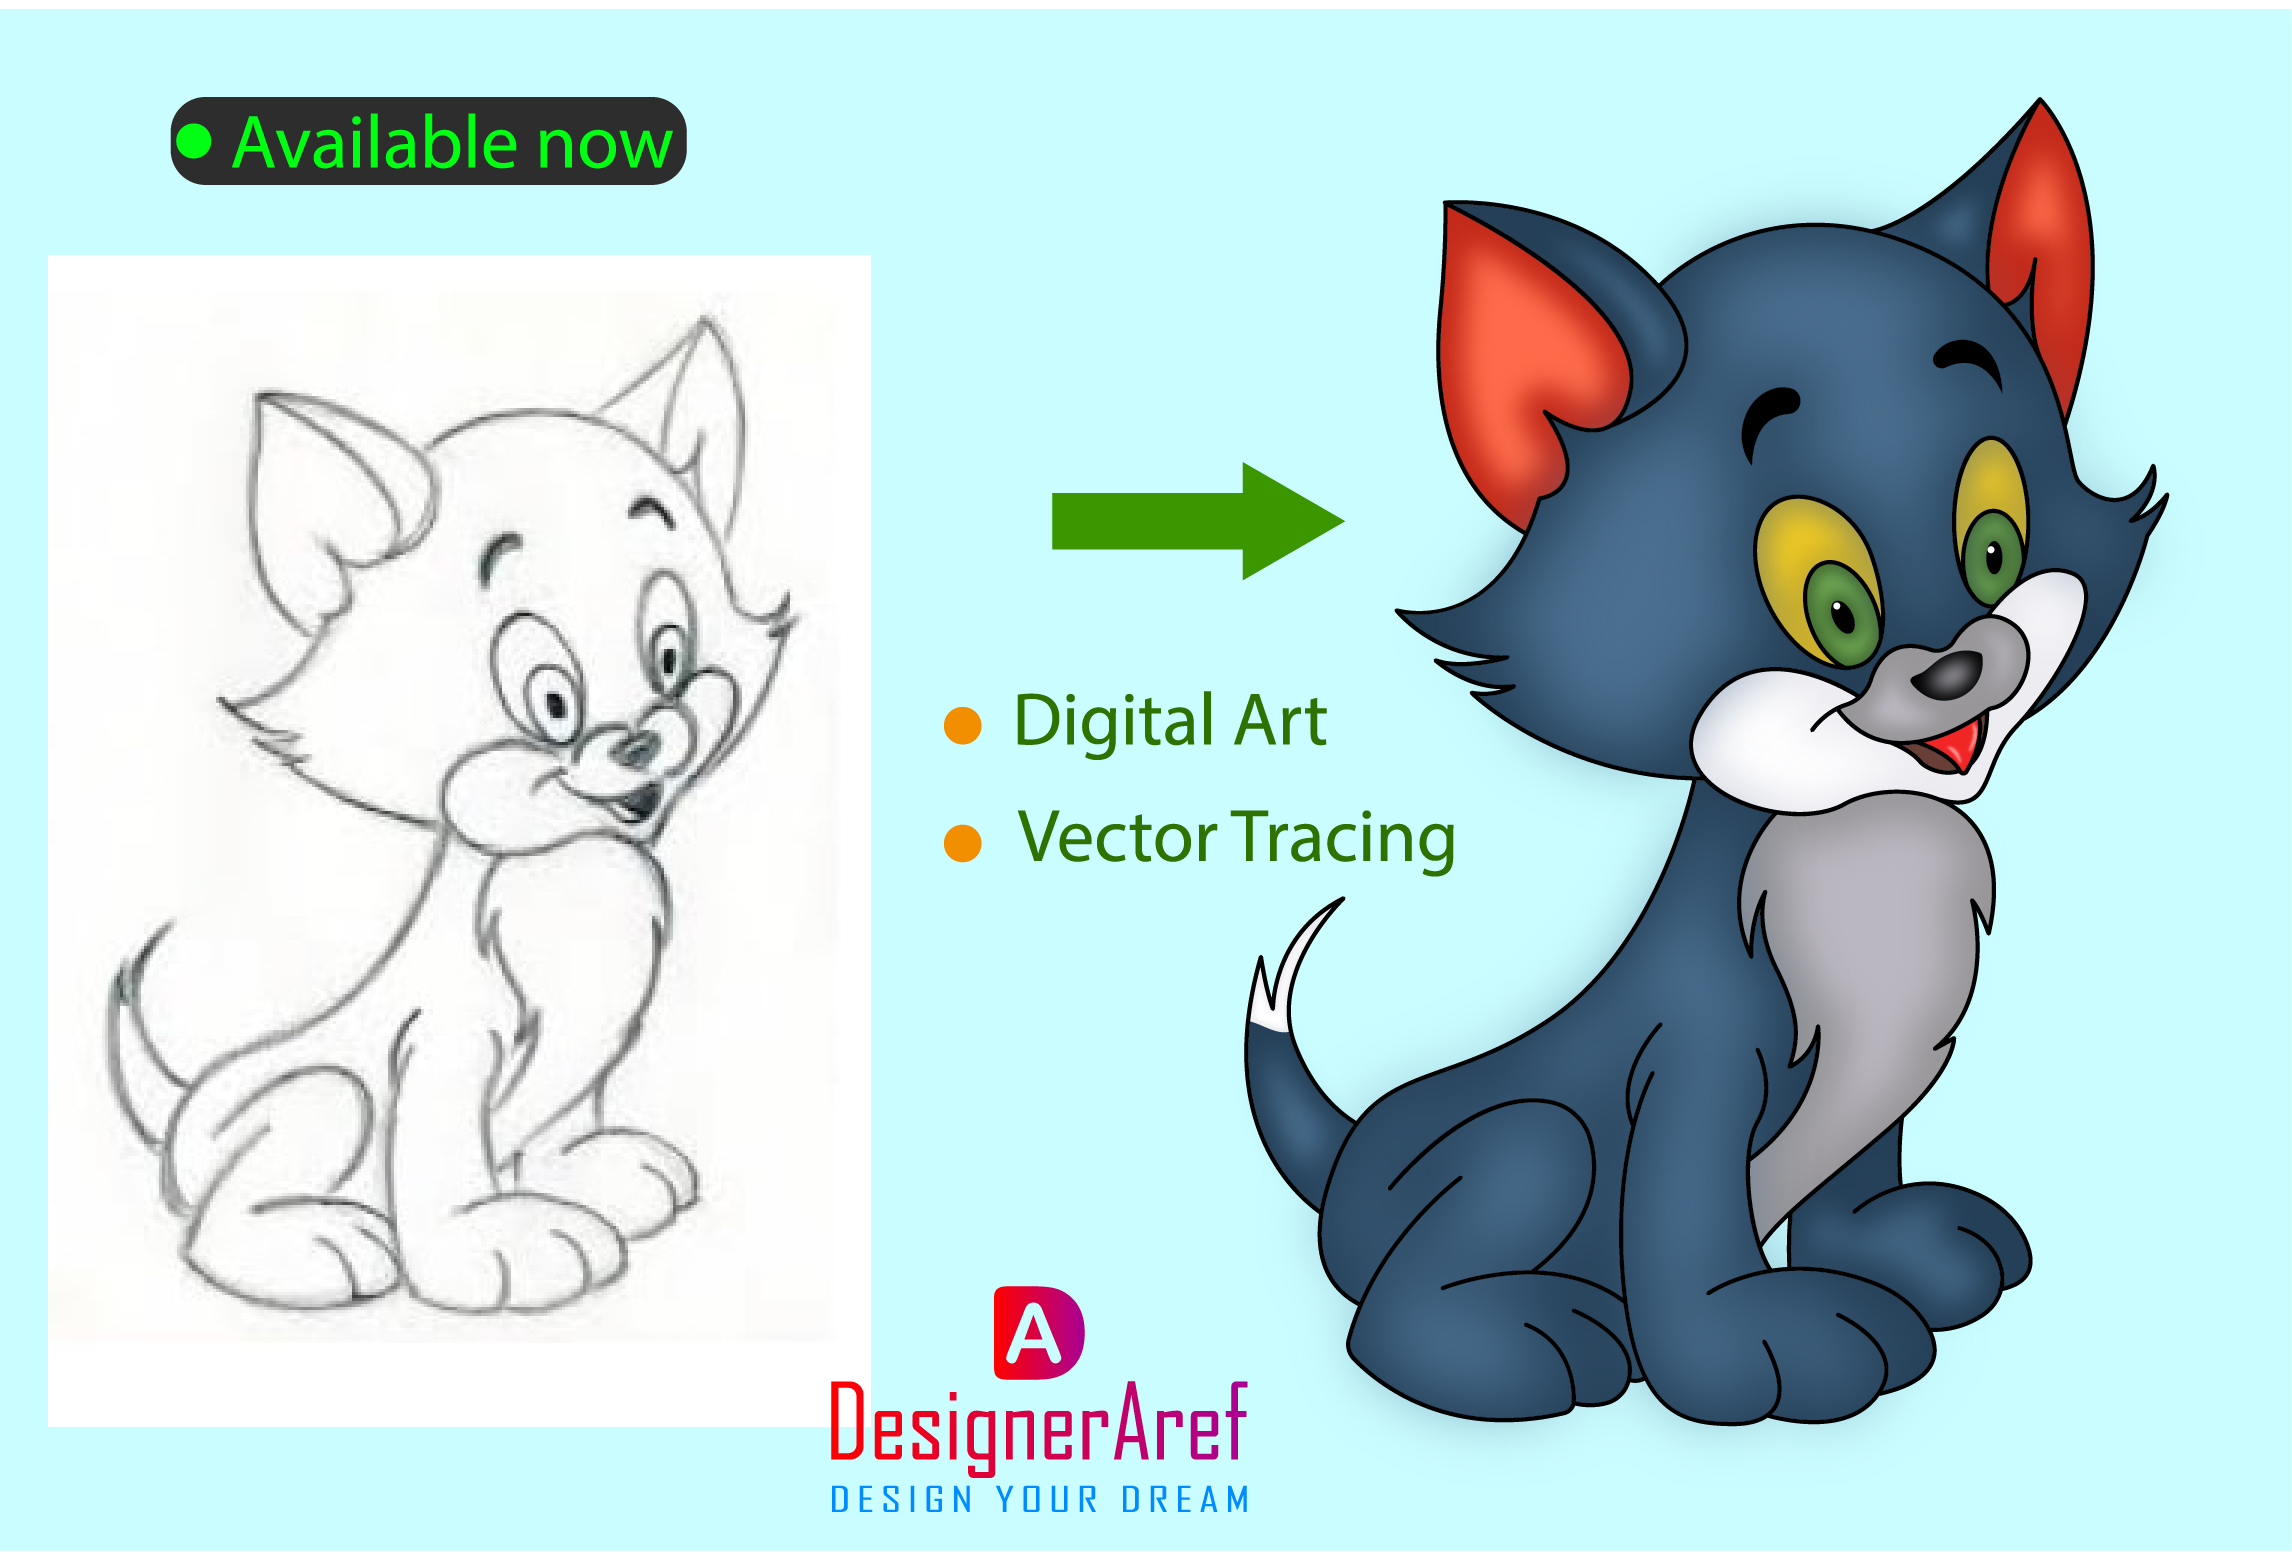 I will convert hand drawing into digital art and vector tracing